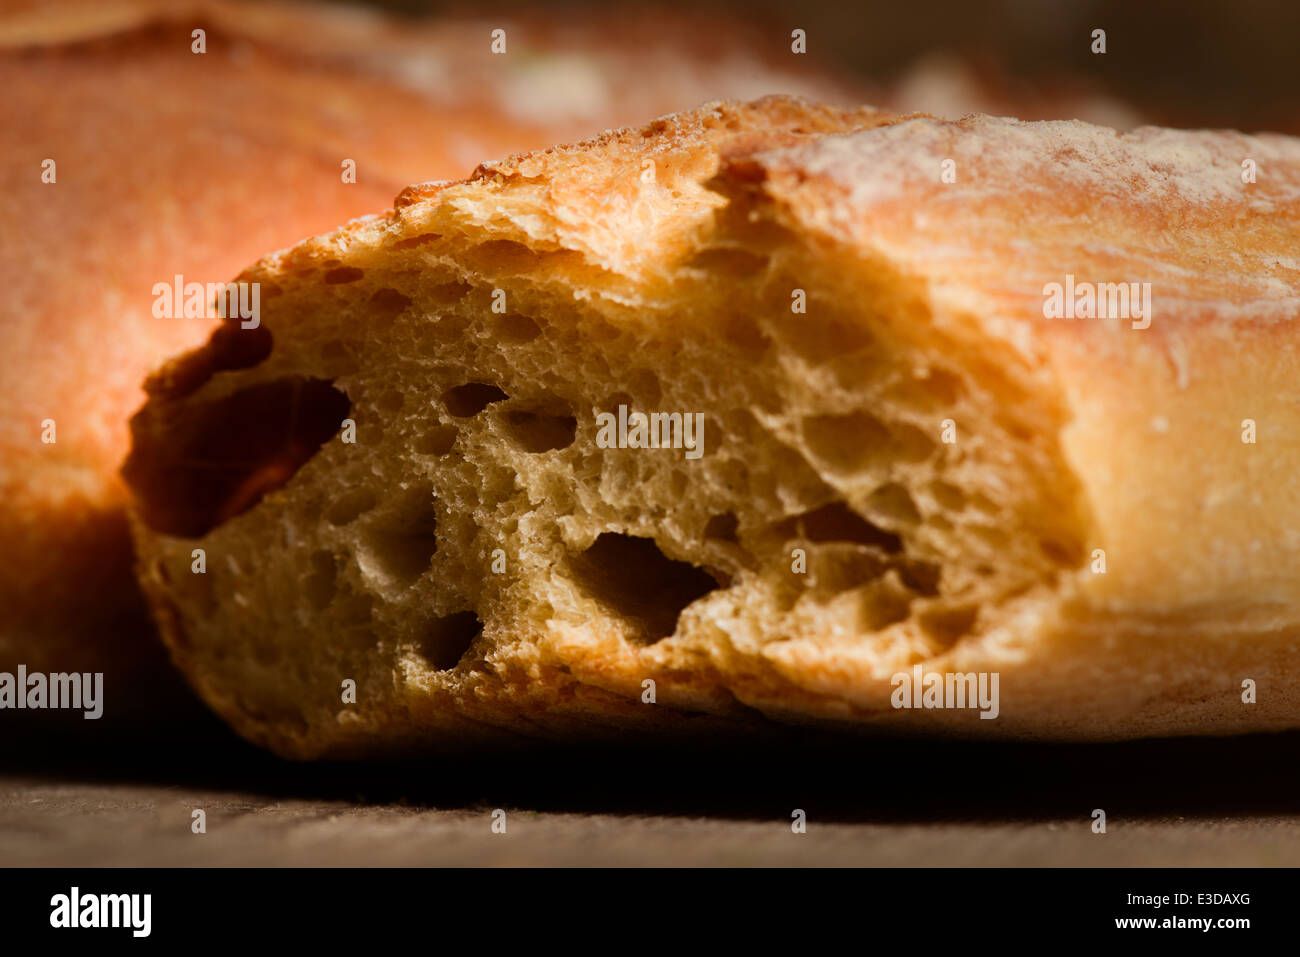 French crusty bread, isolated on a wooden plank background - Stock Image